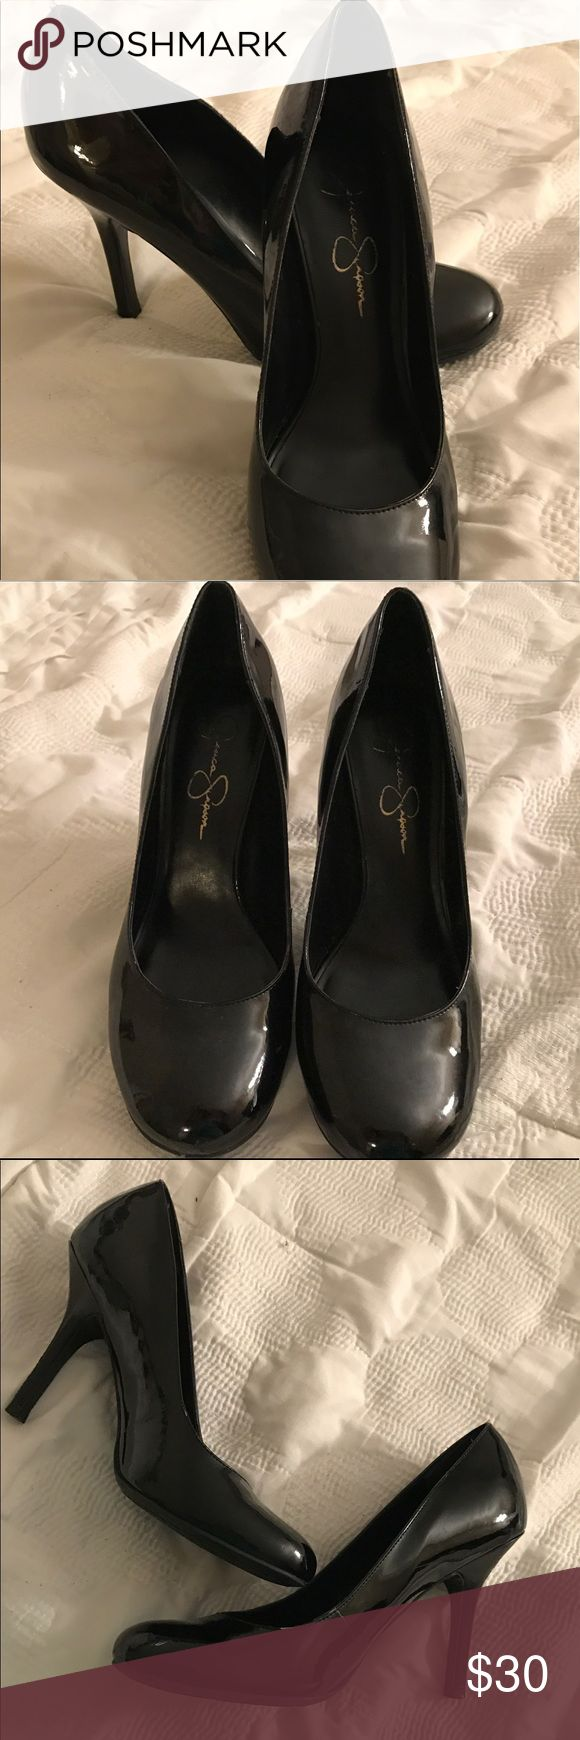 Jessica Simpson Black Pumps EUC EUC Jessica Simpson black pumps. Size 9. Worn once or twice to work. Black patent. Only selling because I prefer a taller heel. Great for work or going out!! Will ship with original box. Please refer to pictures and ask all questions! 💙 Jessica Simpson Shoes Heels